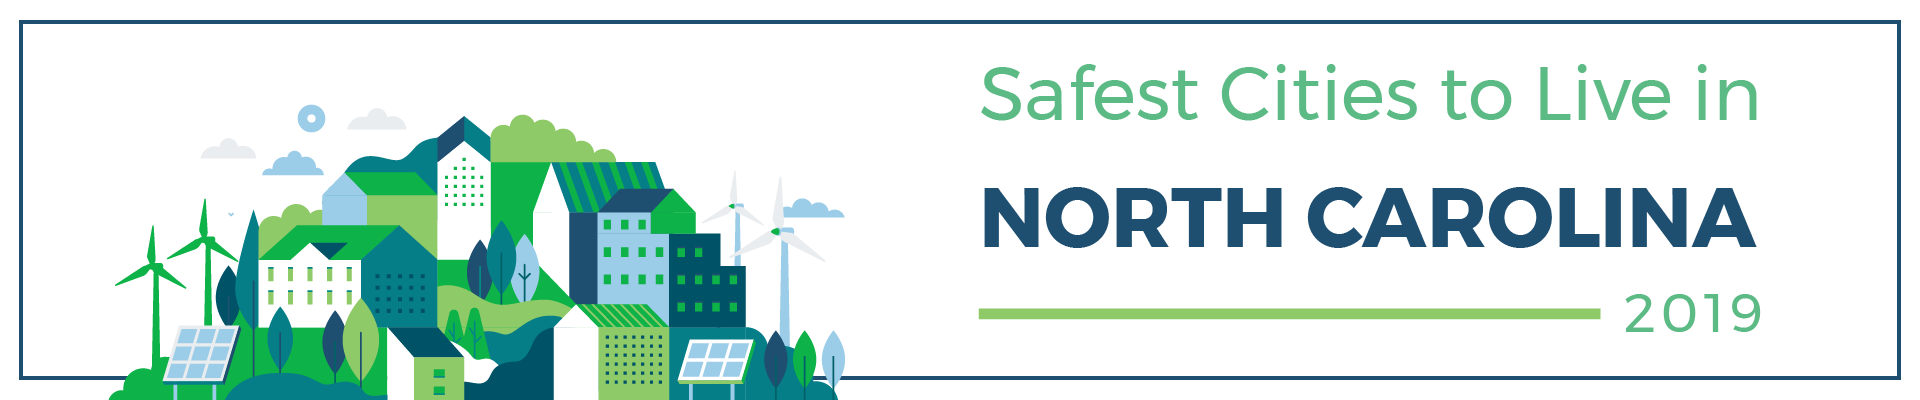 header - safest_cities_north_carolina_2019